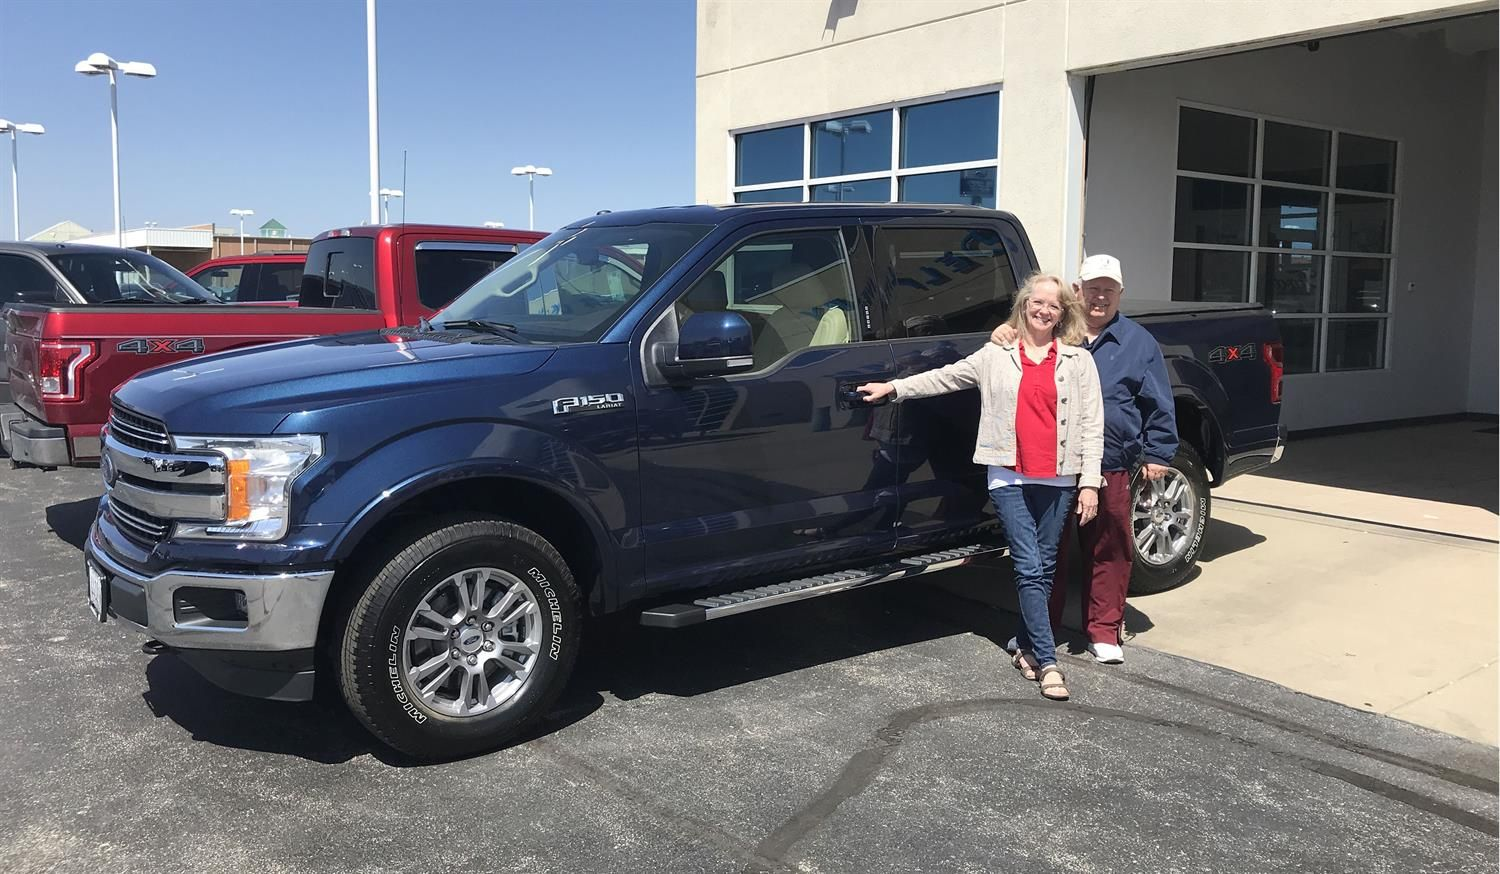 Max S New 2018 Ford F 150 Congratulations And Best Wishes From Landmark Paul Walsh